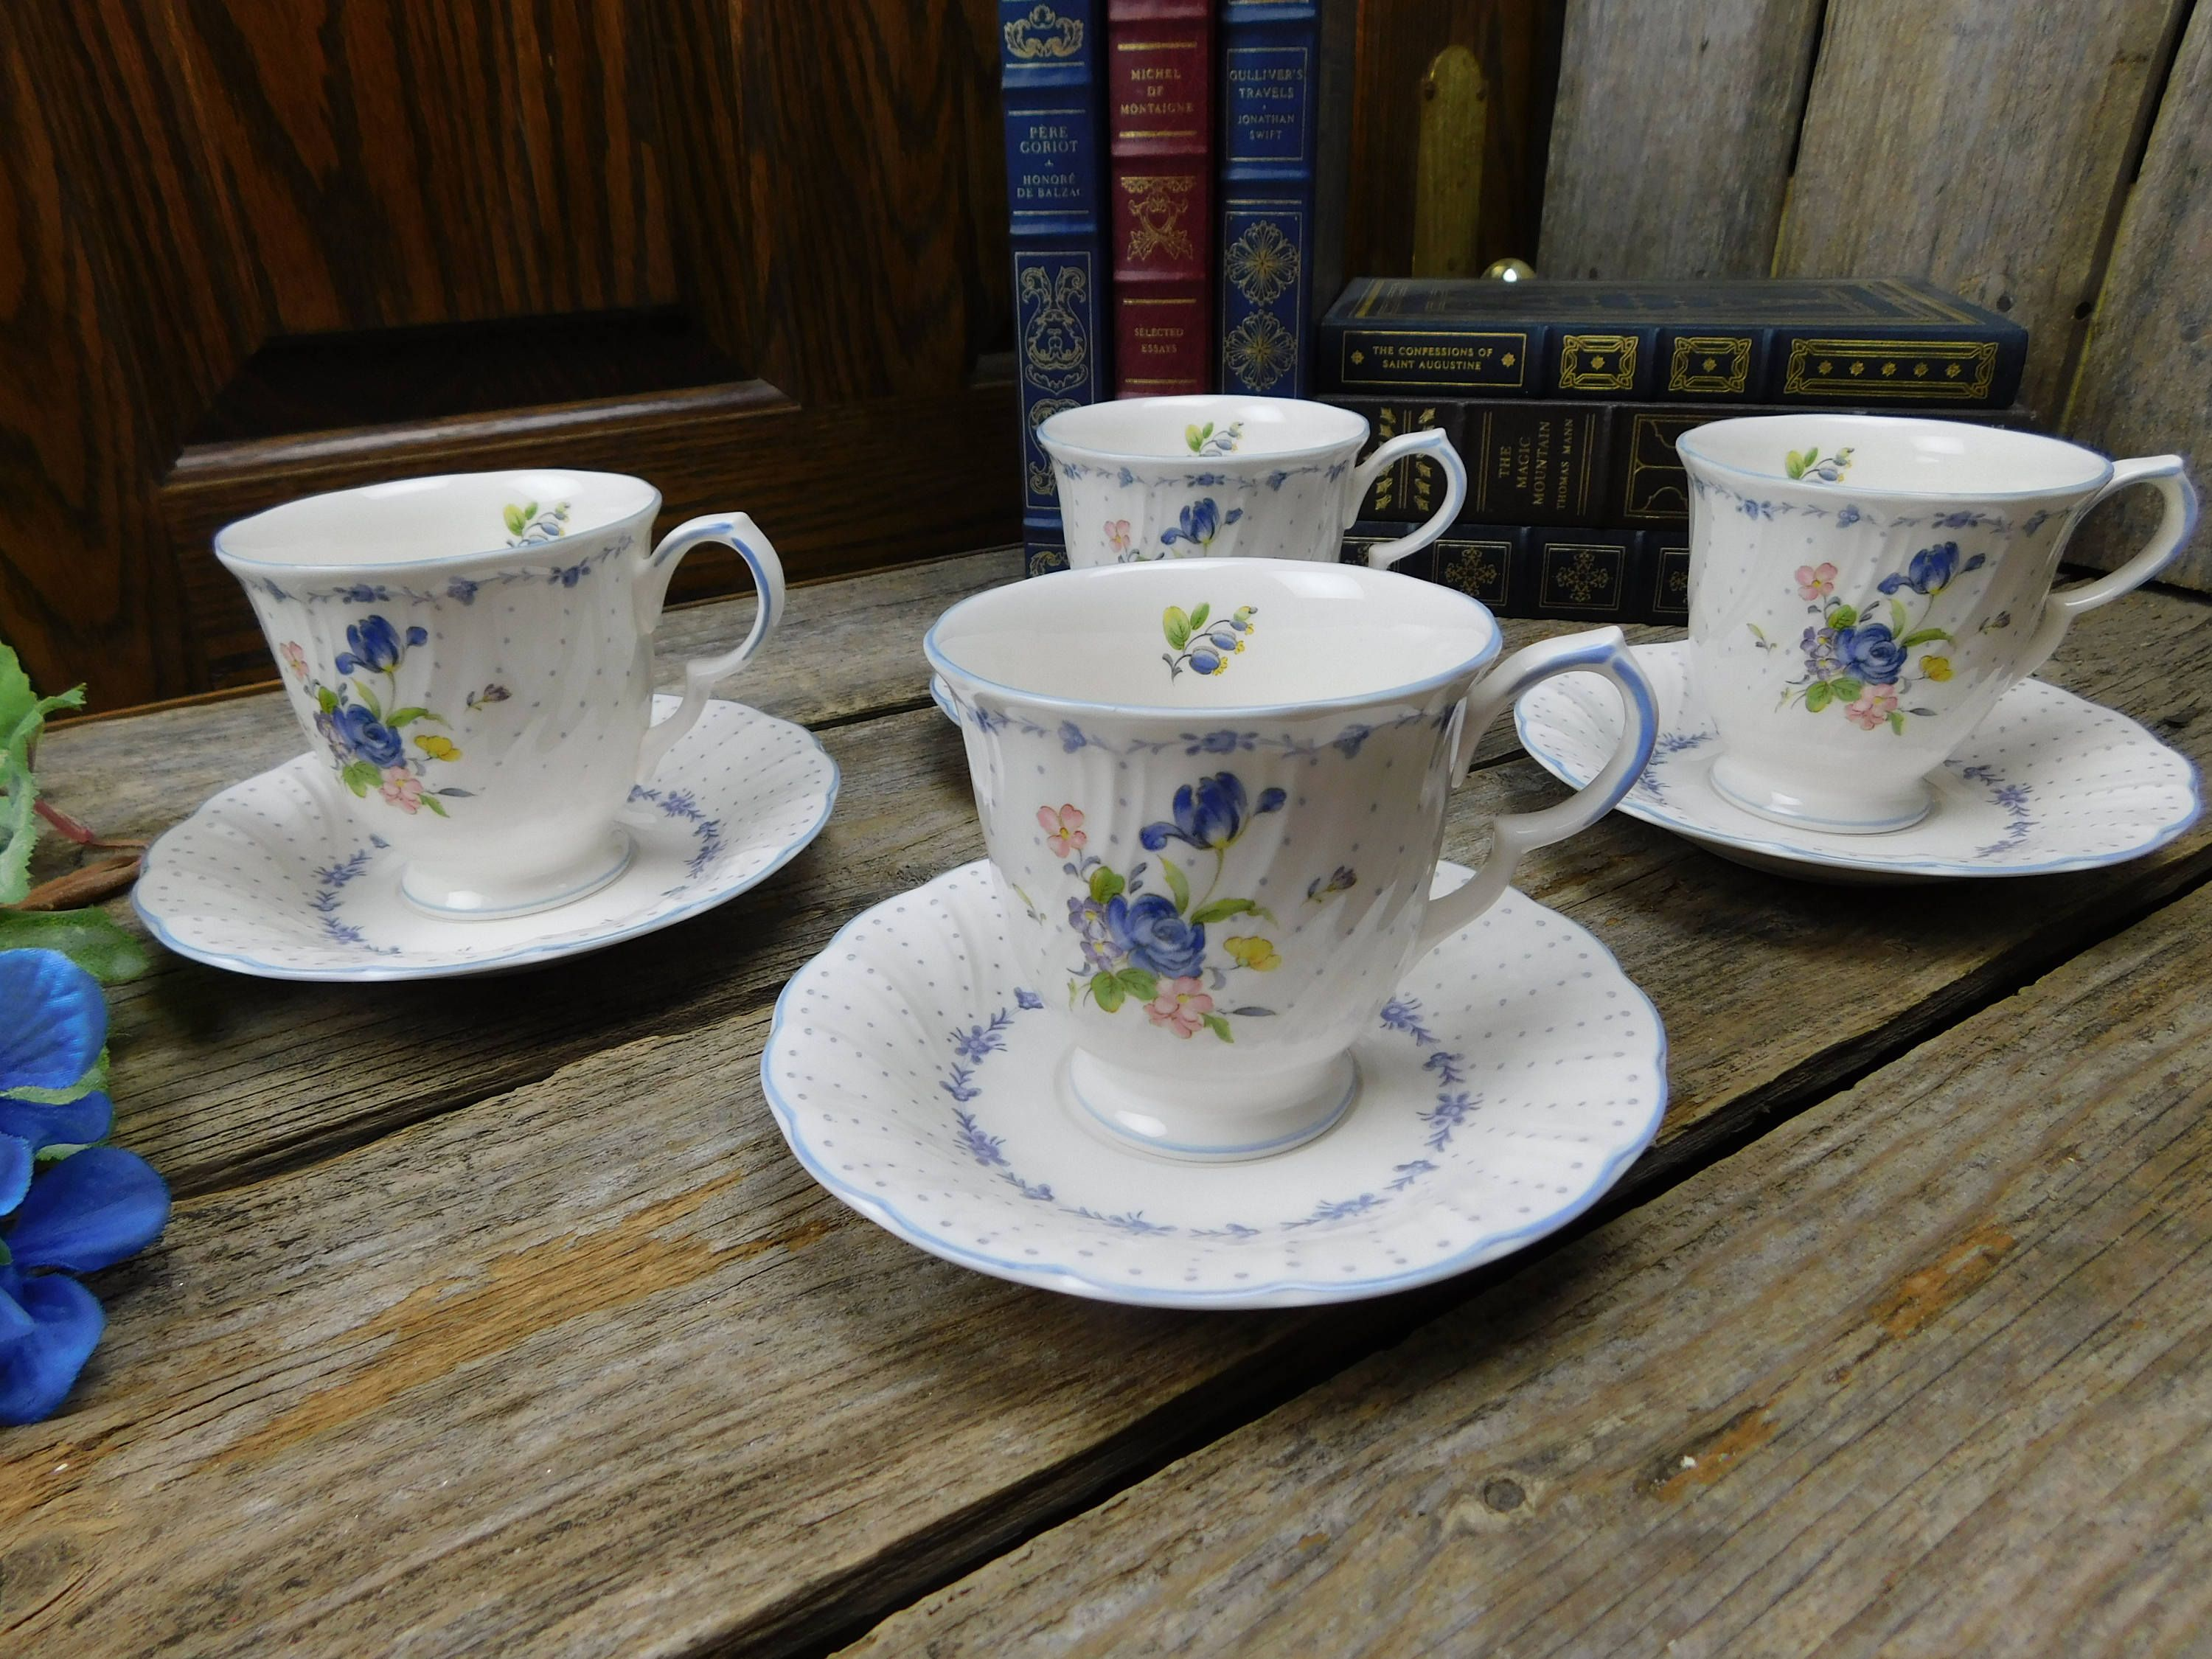 Set of 4 Vintage Nikko Tableware Blue Peony Footed Cups and Saucers by allthatsvintage56 on Etsy & Set of 4 Vintage Nikko Tableware Blue Peony Footed Cups and Saucers ...